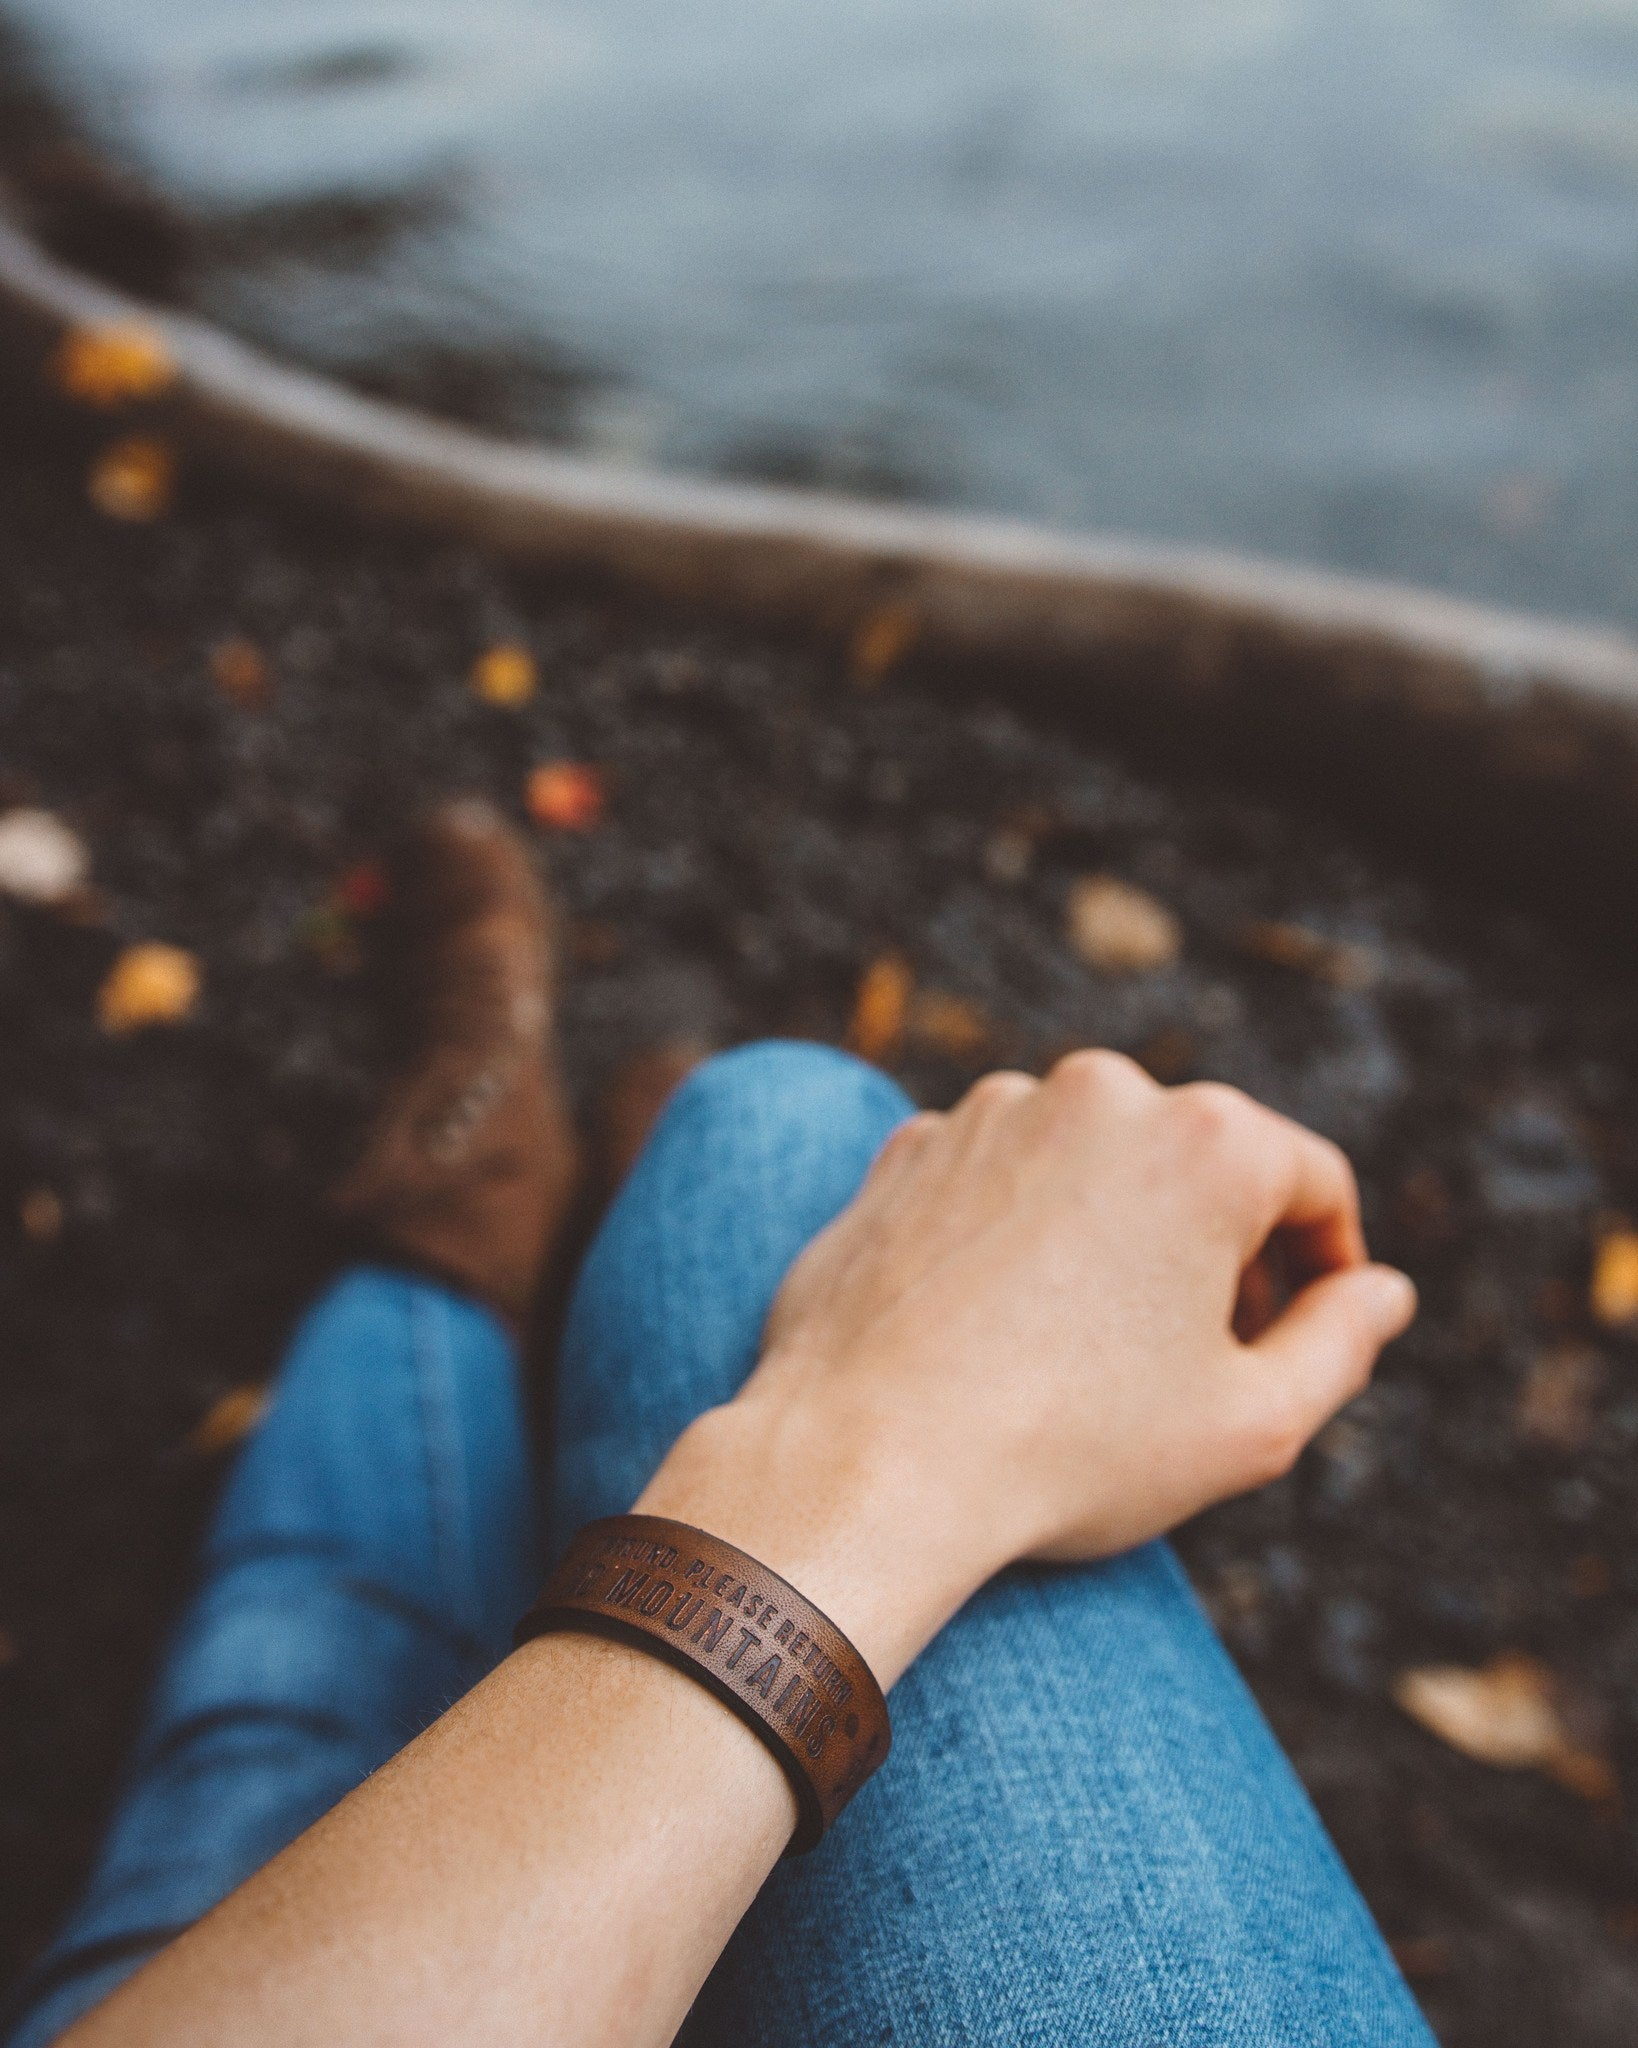 Home Leather Bracelet - The Parks Apparel